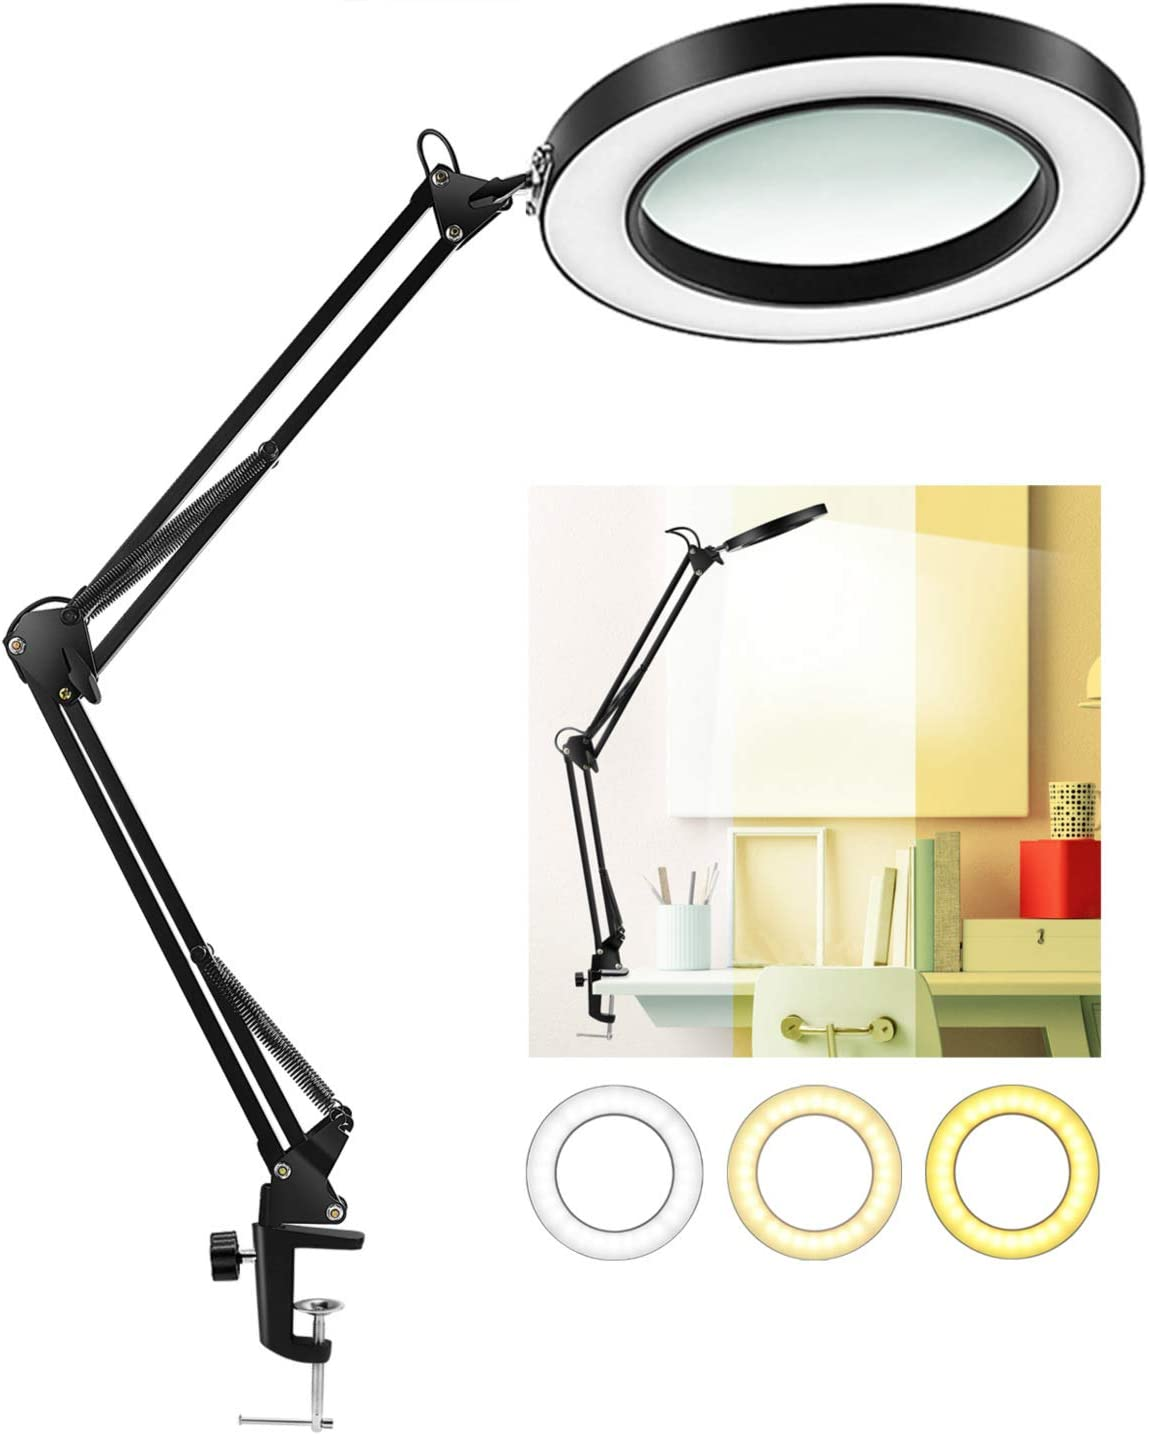 LANCOSC LED Magnifying Lamp with Clamp, 1,500 Lumens Stepless Dimmable, 3 Color Modes, 5-Diopter 4.3″ Real Glass Lens, Adjustable Swivel Arm Lighted Magnifier Light for Reading Craft Close Work-2.25X